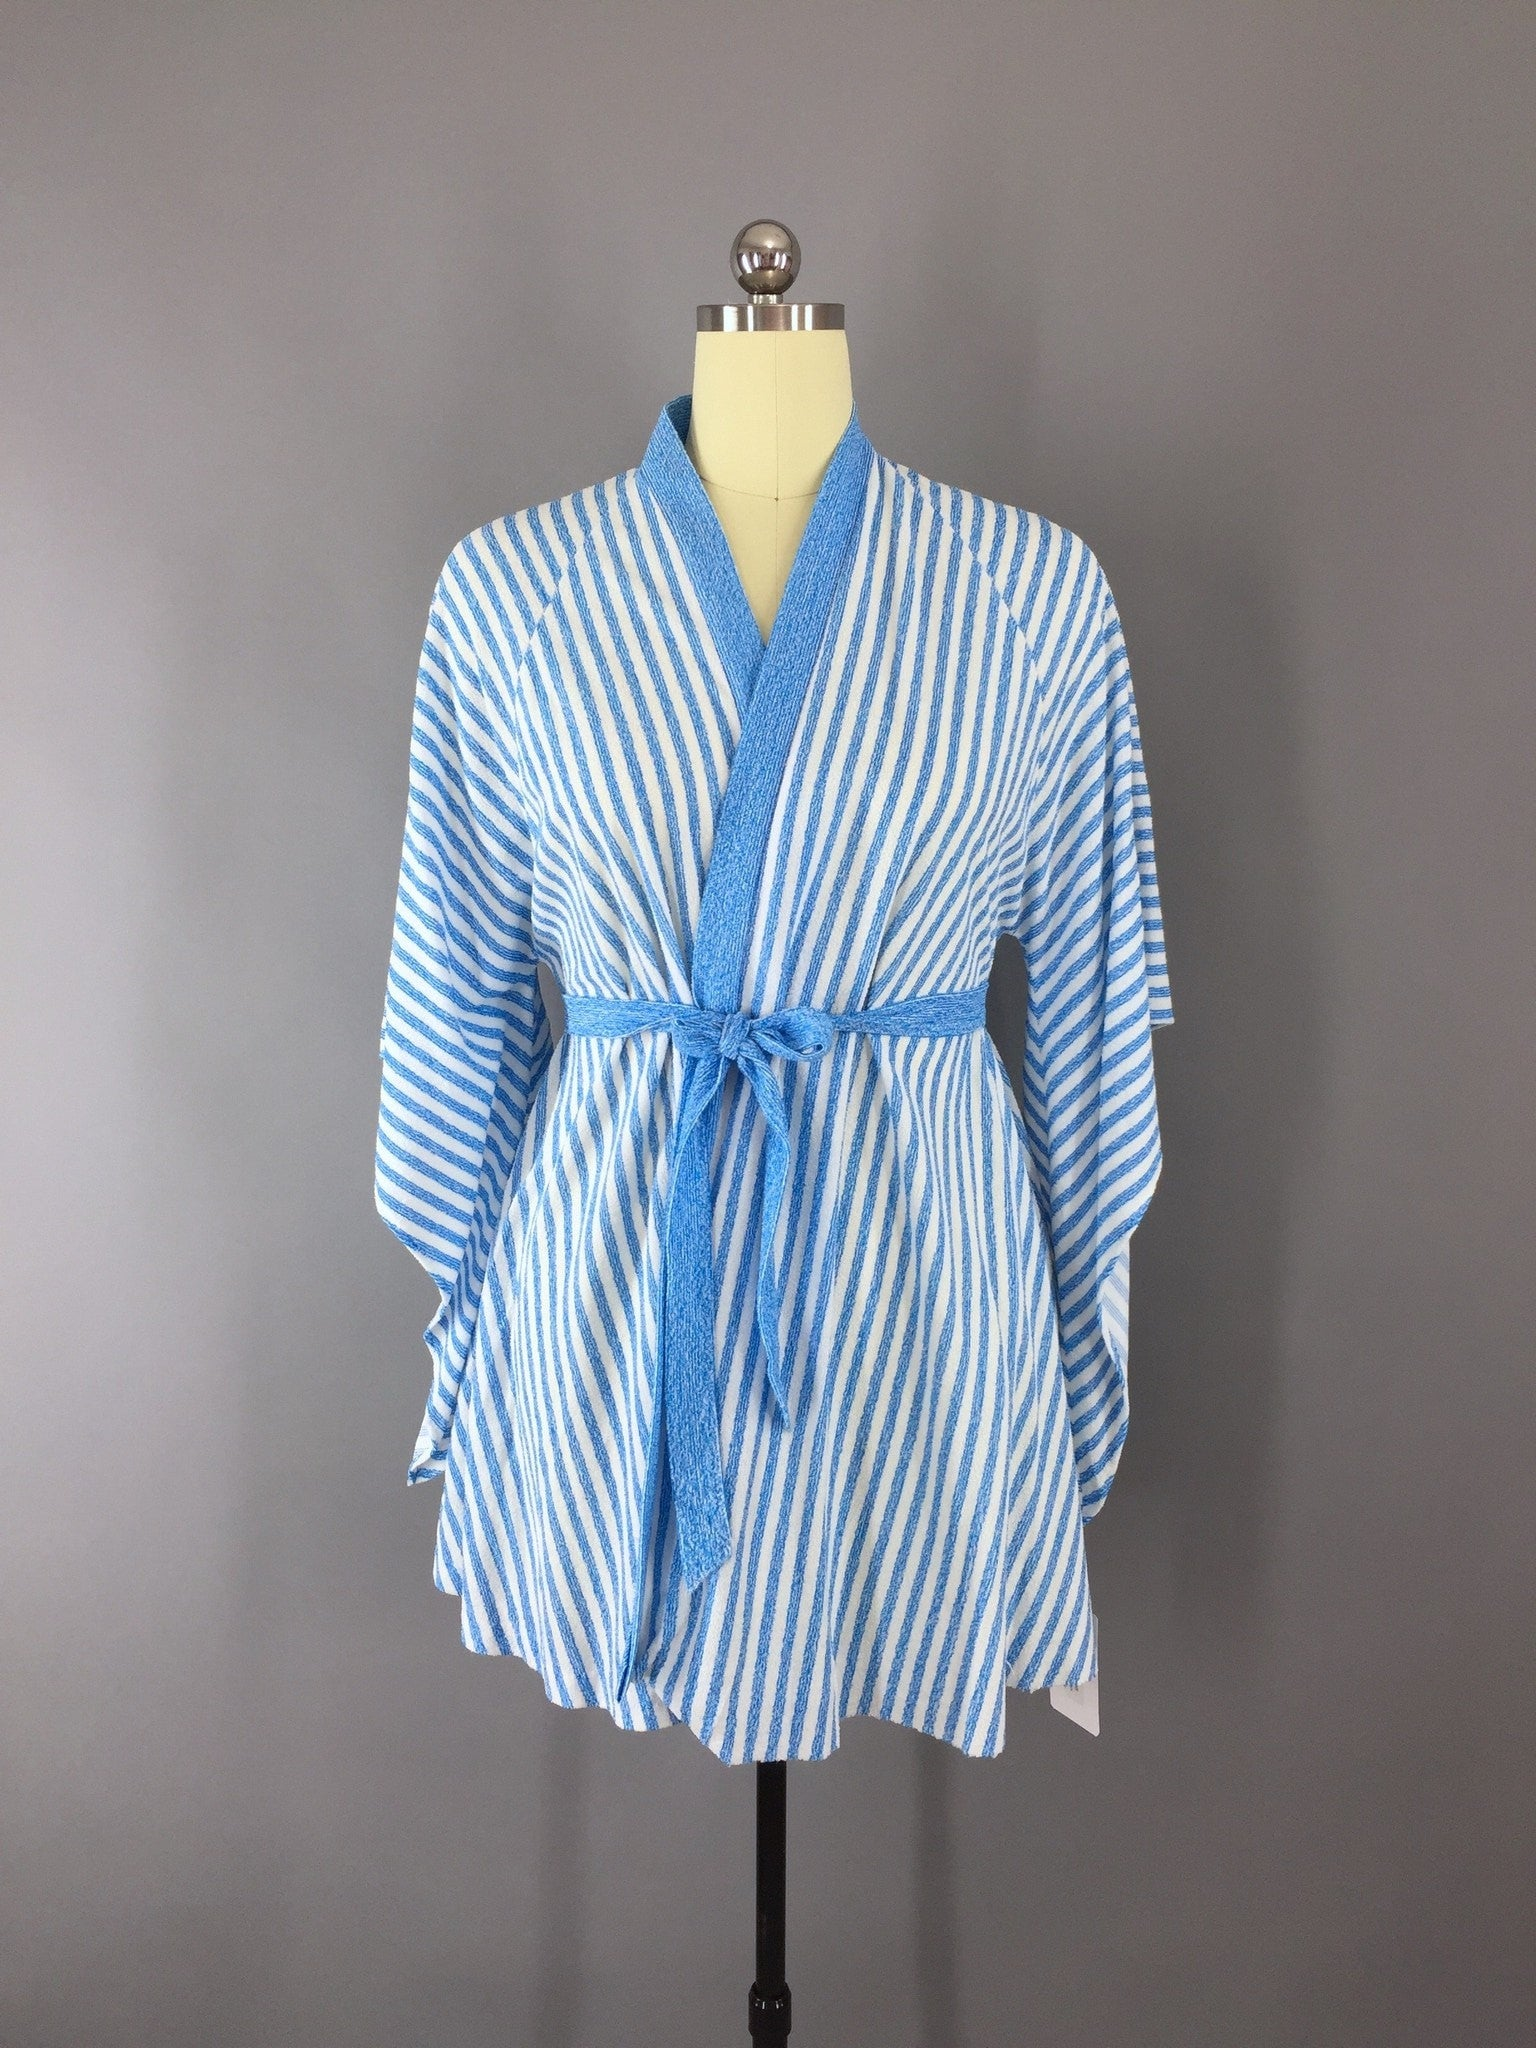 Vintage 1980s Terry Robe with French Blue Stripes Lingerie ThisBlueBird